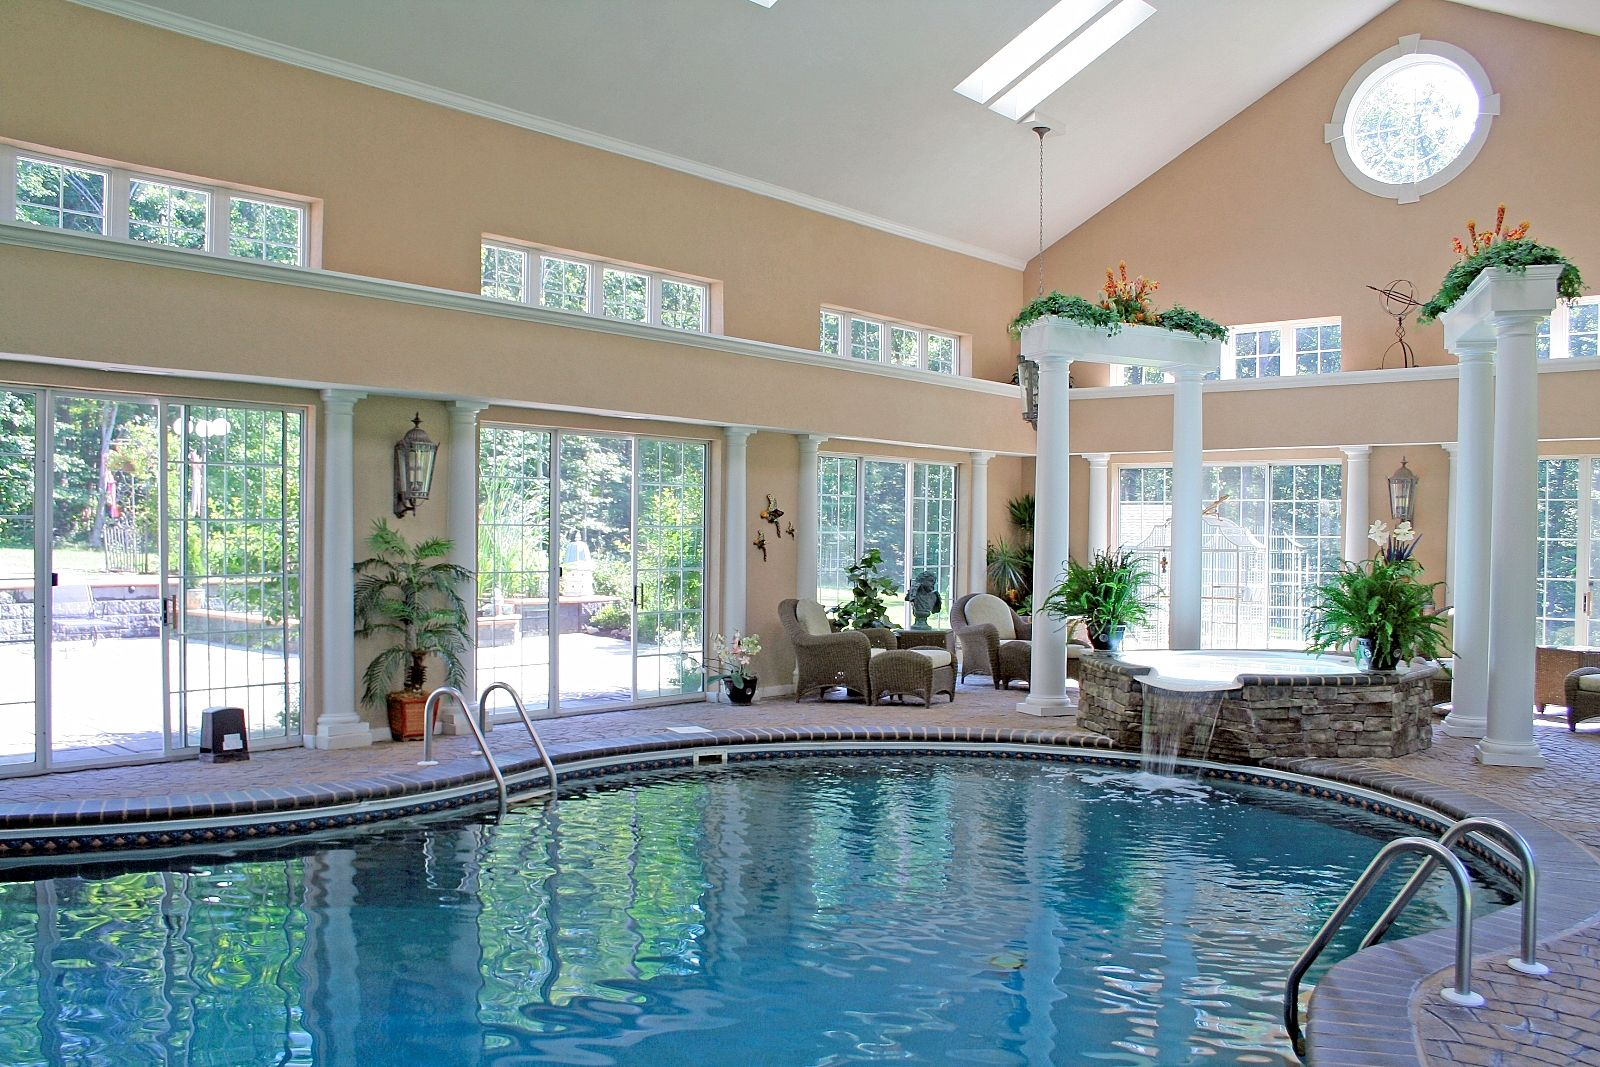 Houses With Indoor Pools the house swimming pool will not make the home become perfect if